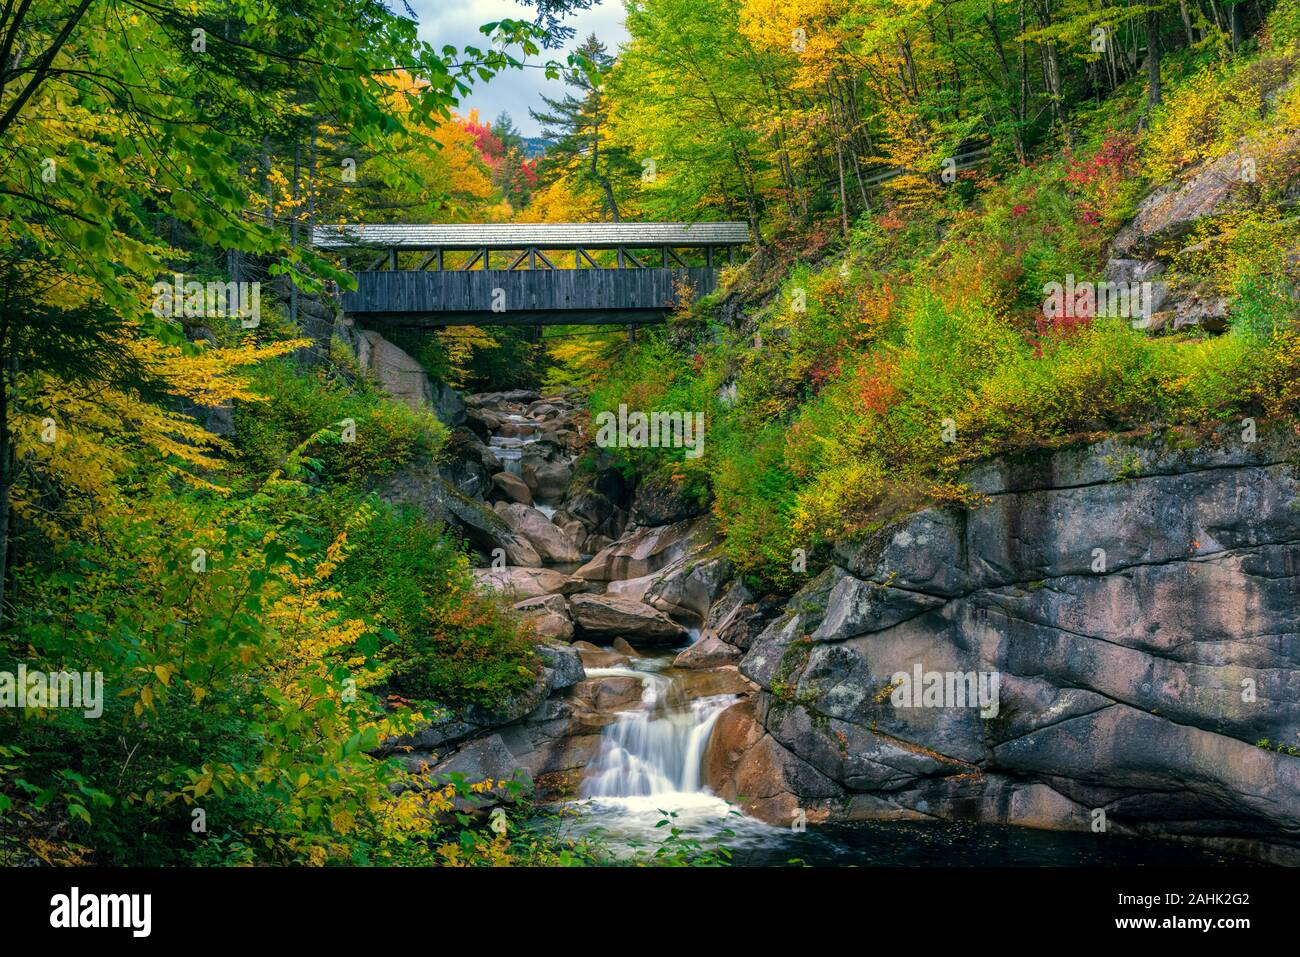 The Sentinel Pine covered bridge spans the Pemigewasset River in the Flume gorge, near Lincoln, NH. Stock Photo